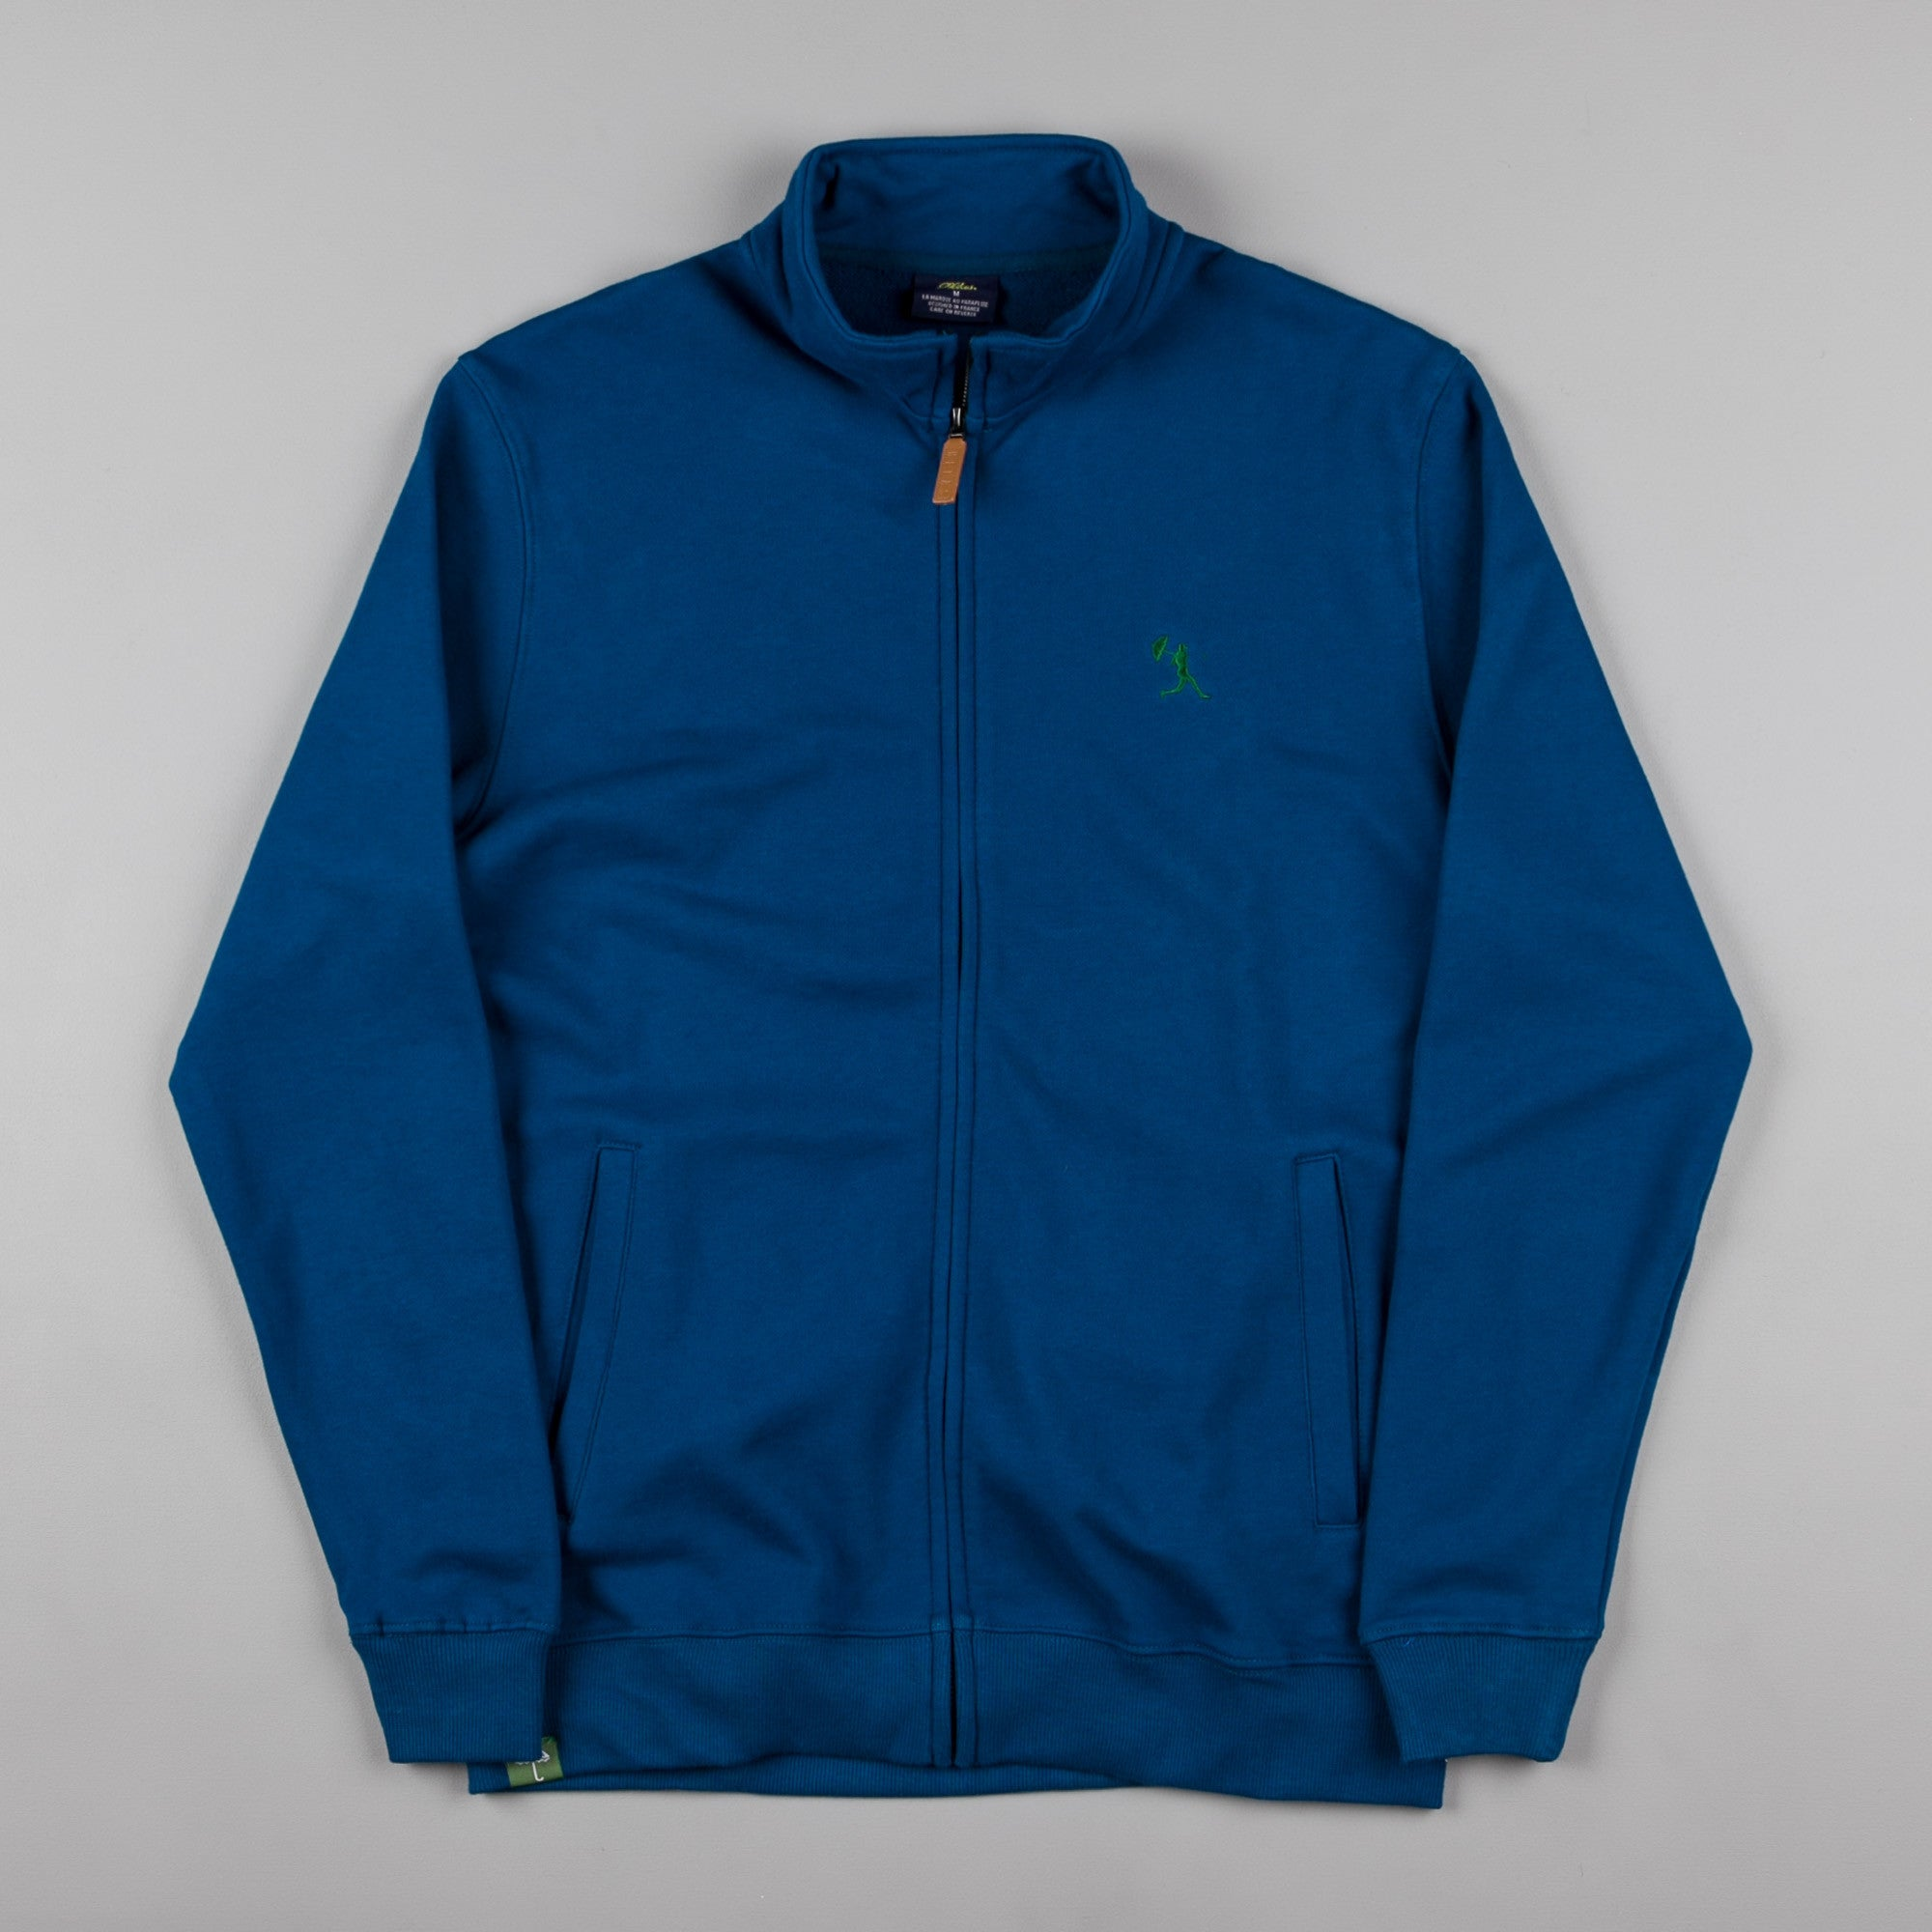 Helas Baller Full Zip Jacket - Blue